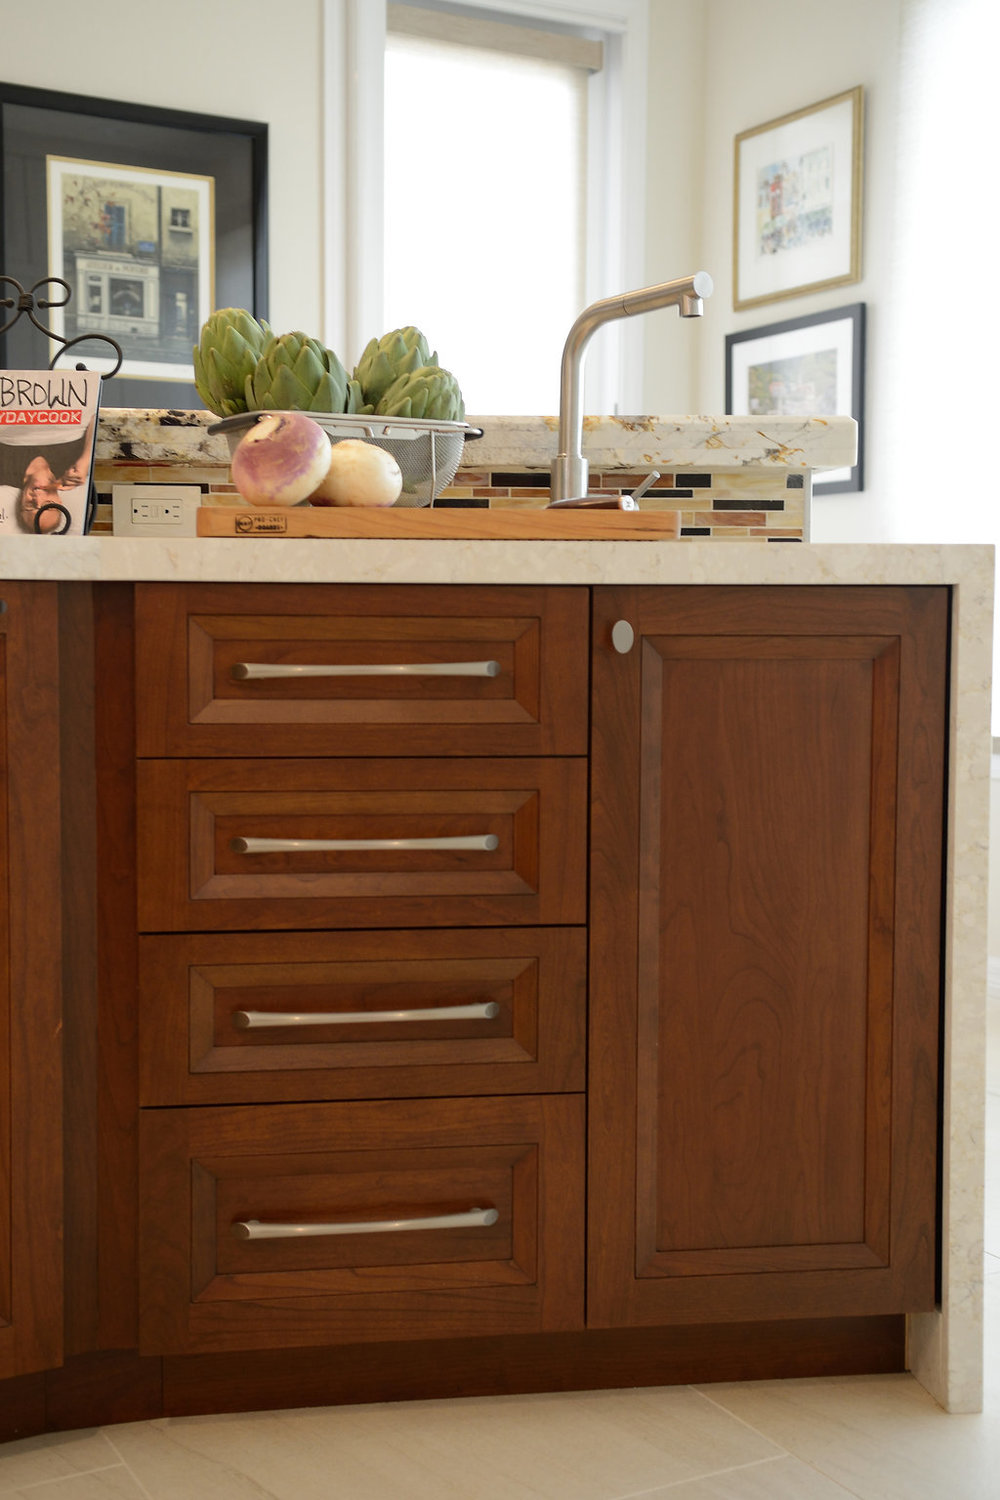 Ovation Custom Cabinetry exclusively at Signature Designs Kitchen Bath